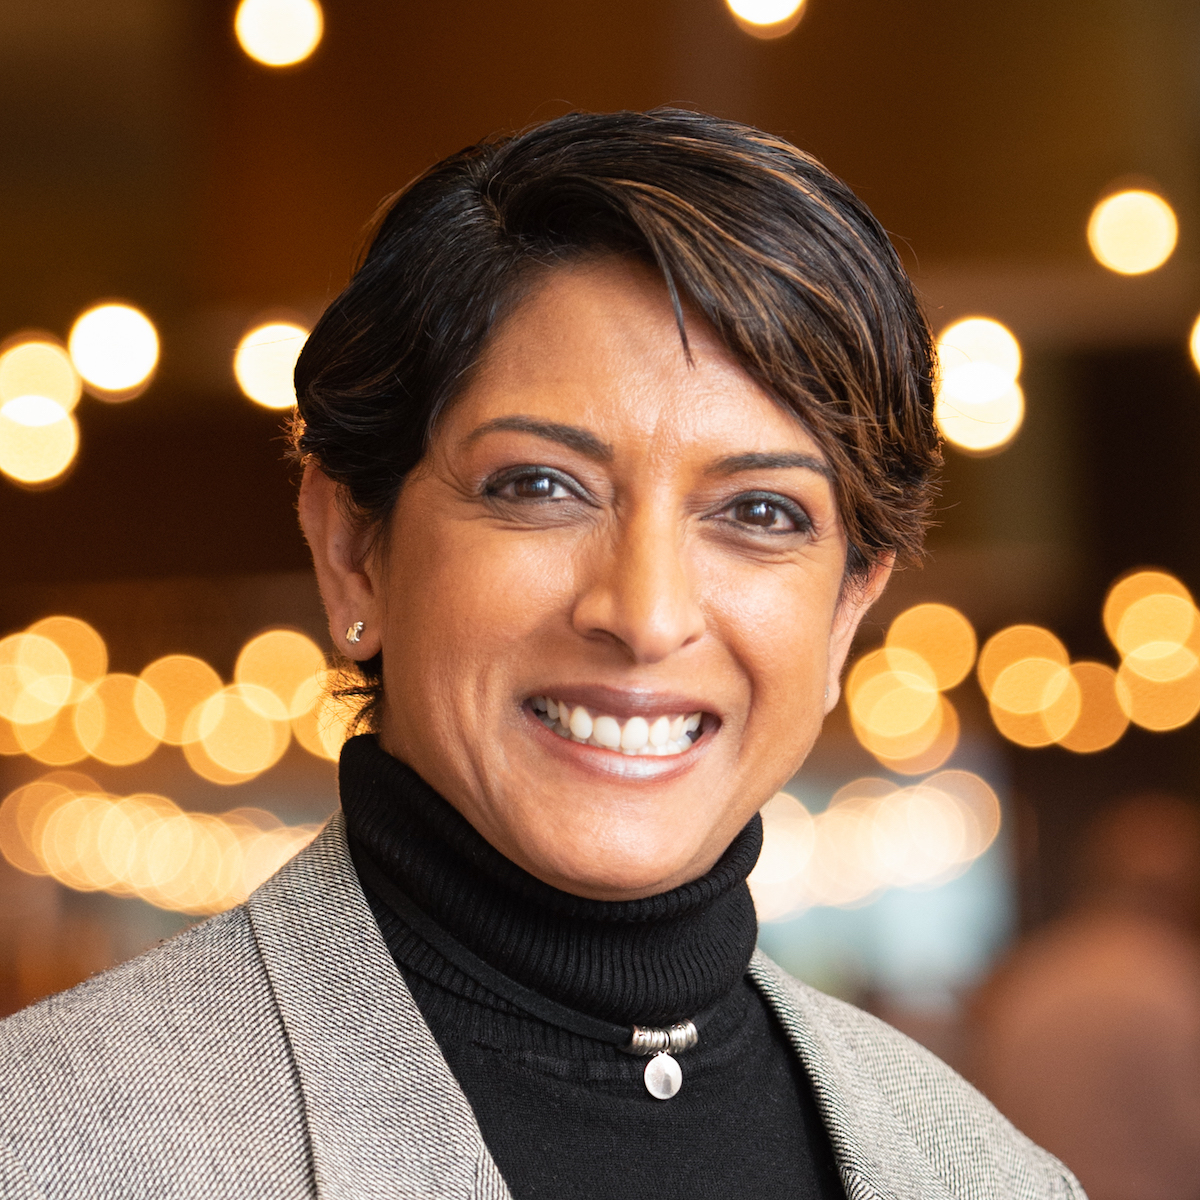 A head and shoulders photo of Meena Kothandaraman